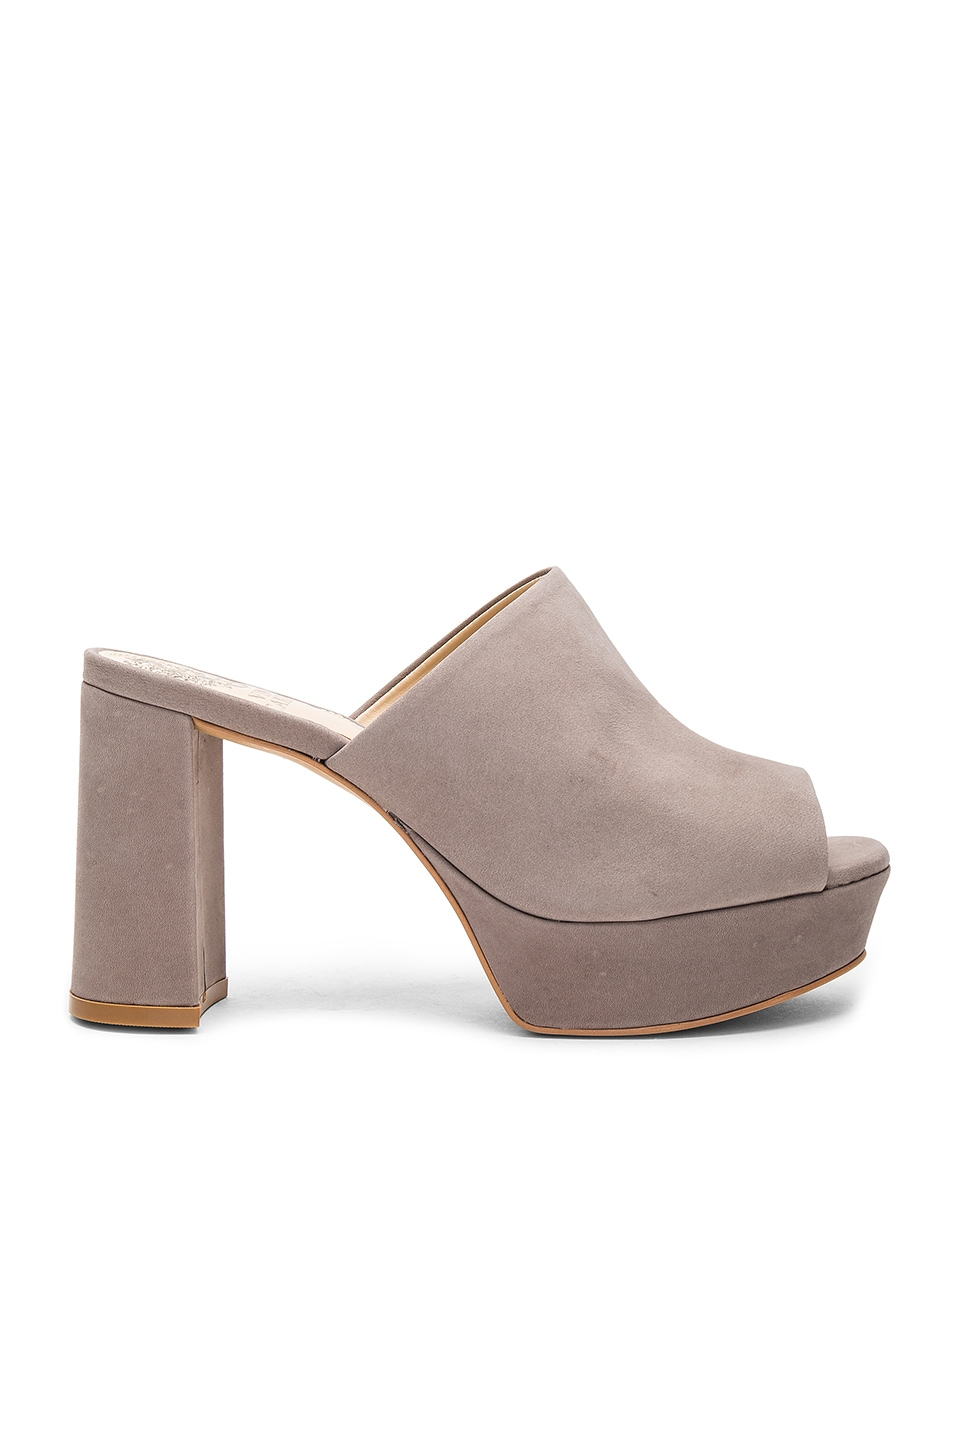 Photo of Basilia Heel by Vince Camuto shoes